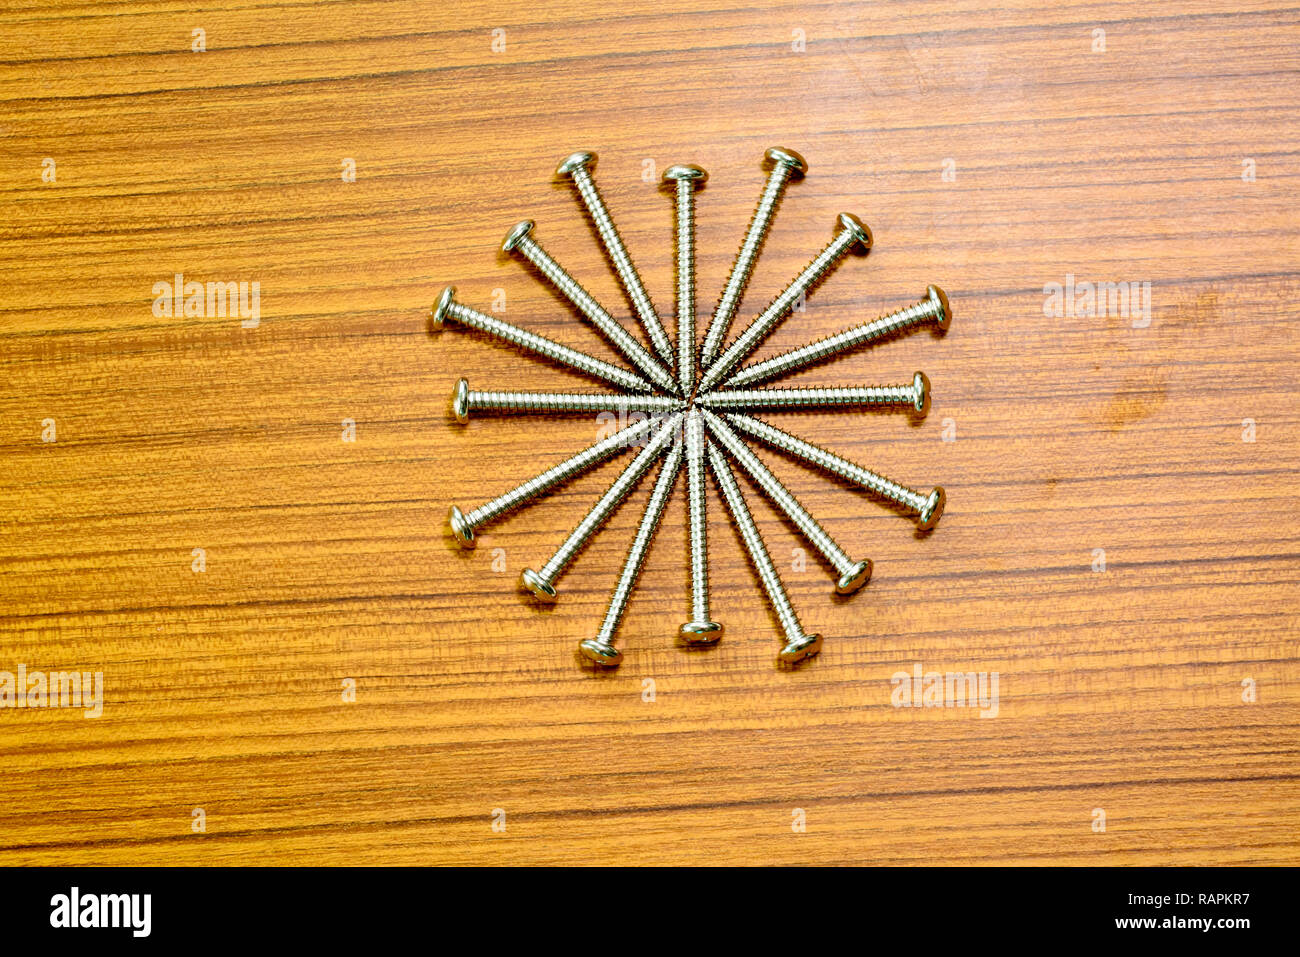 Salf tapping screw on a wood background. - Stock Image